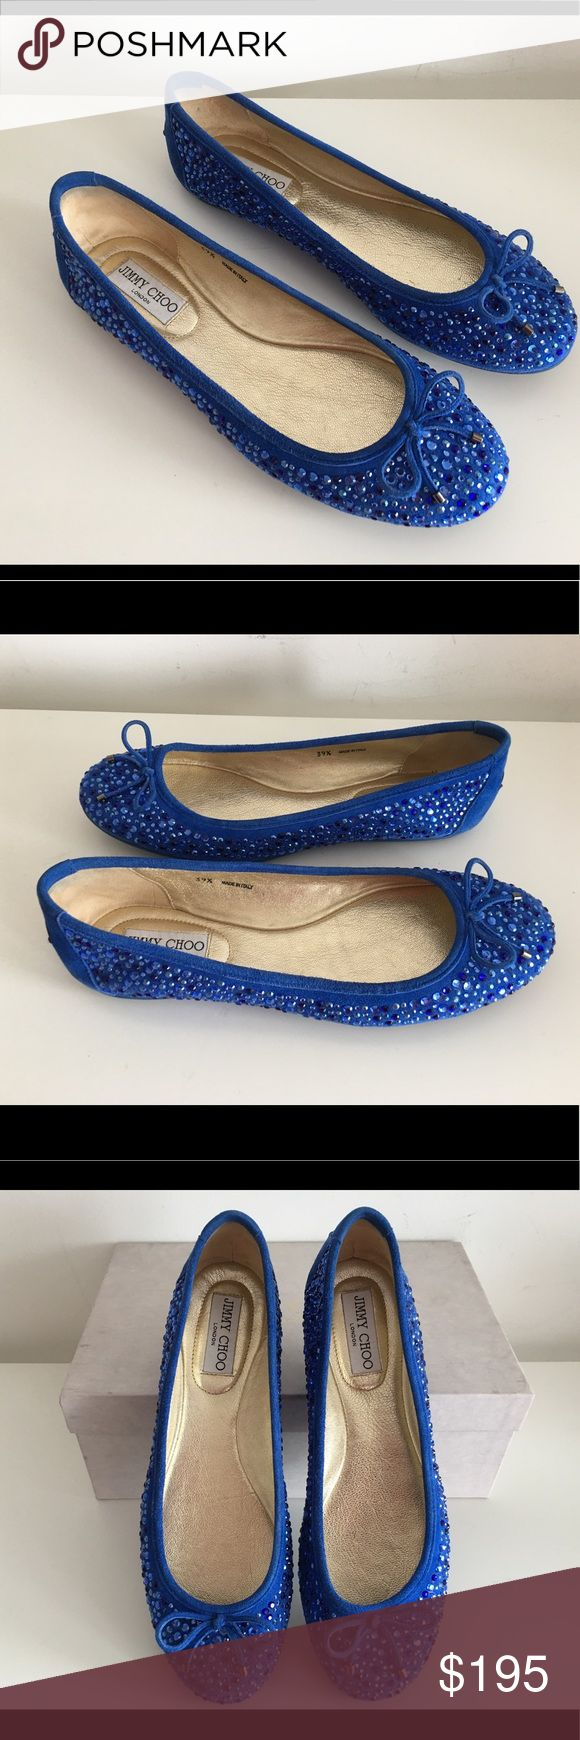 JIMMY CHOO WEBER CRYSTAL-EMBELLISHED BLUE SUEDE JIMMY CHOO WEBER CRYSTAL-EMBELLISHED BLUE SUEDE BALLET FLATS, SIZE 39.5, PADDED LEATHER INSOLE, OLD GOLD-TONE LOGO ENGRAVED PLATE AT HEEL, THEIR BLUE SUEDE EXTERIOR IS COUPLED WITH BOWS ON THE FRONT, MADE IN ITALY, BRAND NEW WITH BOX AND DUST BAG. Jimmy Choo Shoes Flats & Loafers